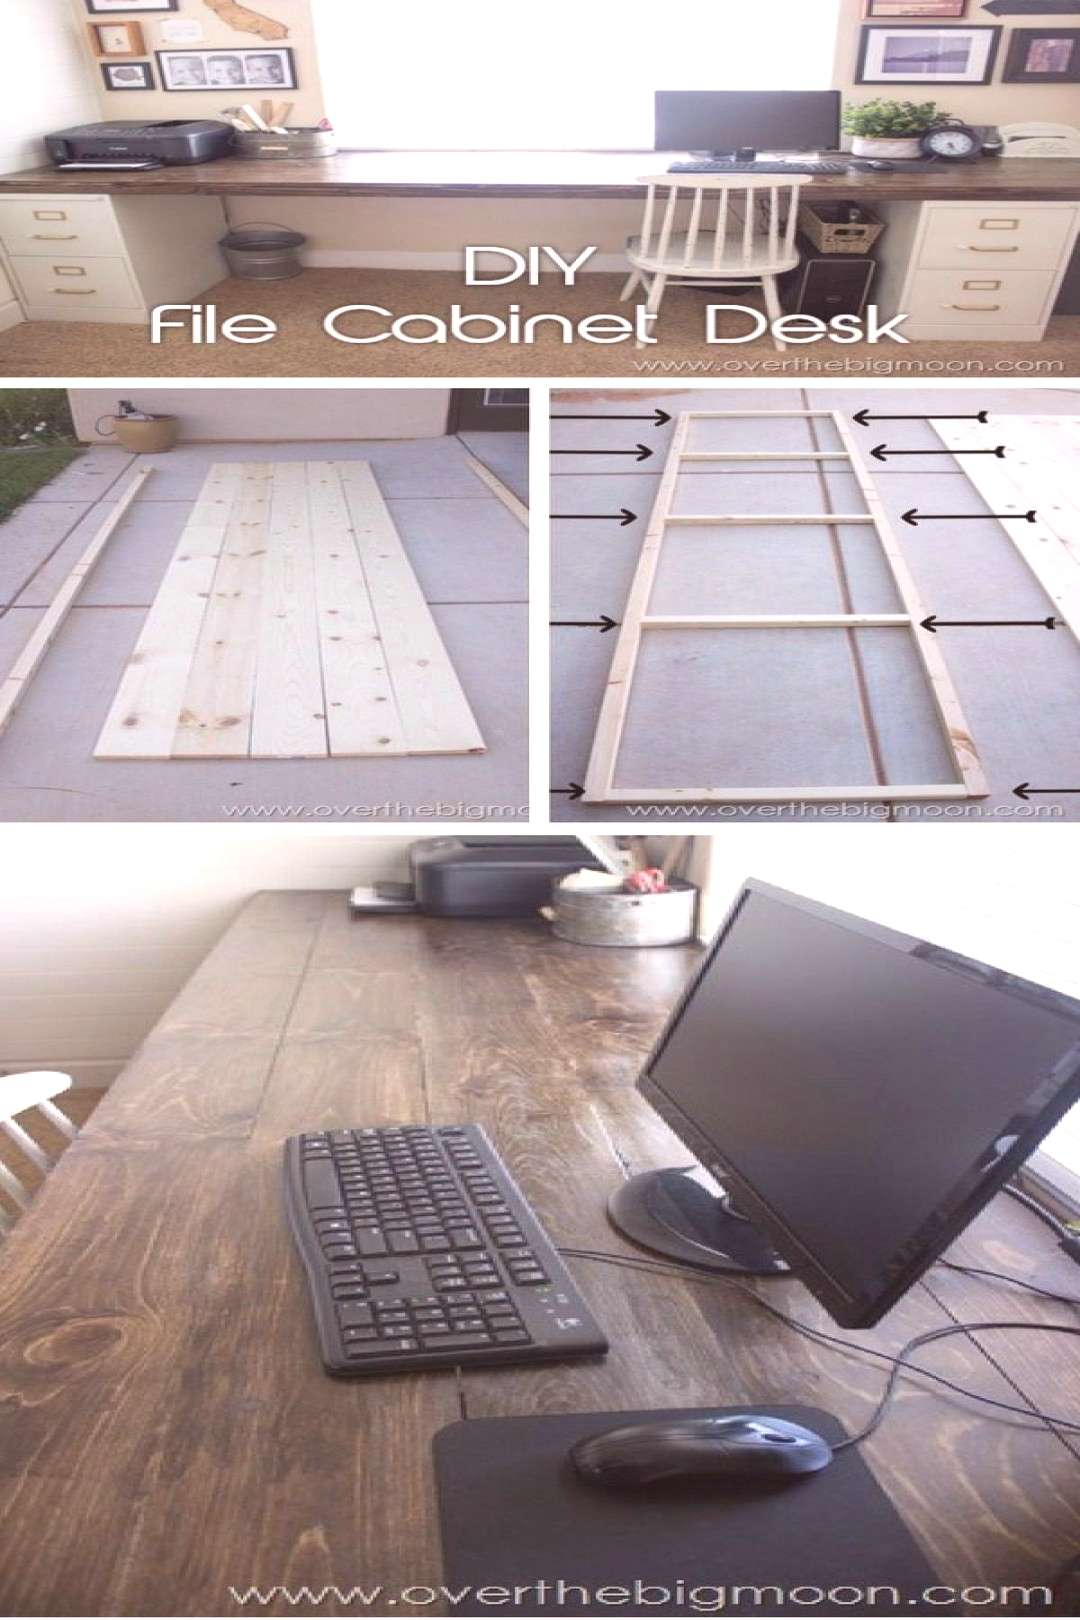 How do I install? desk made of filing cabinets and wooden planks. Great P ... - How do I install?